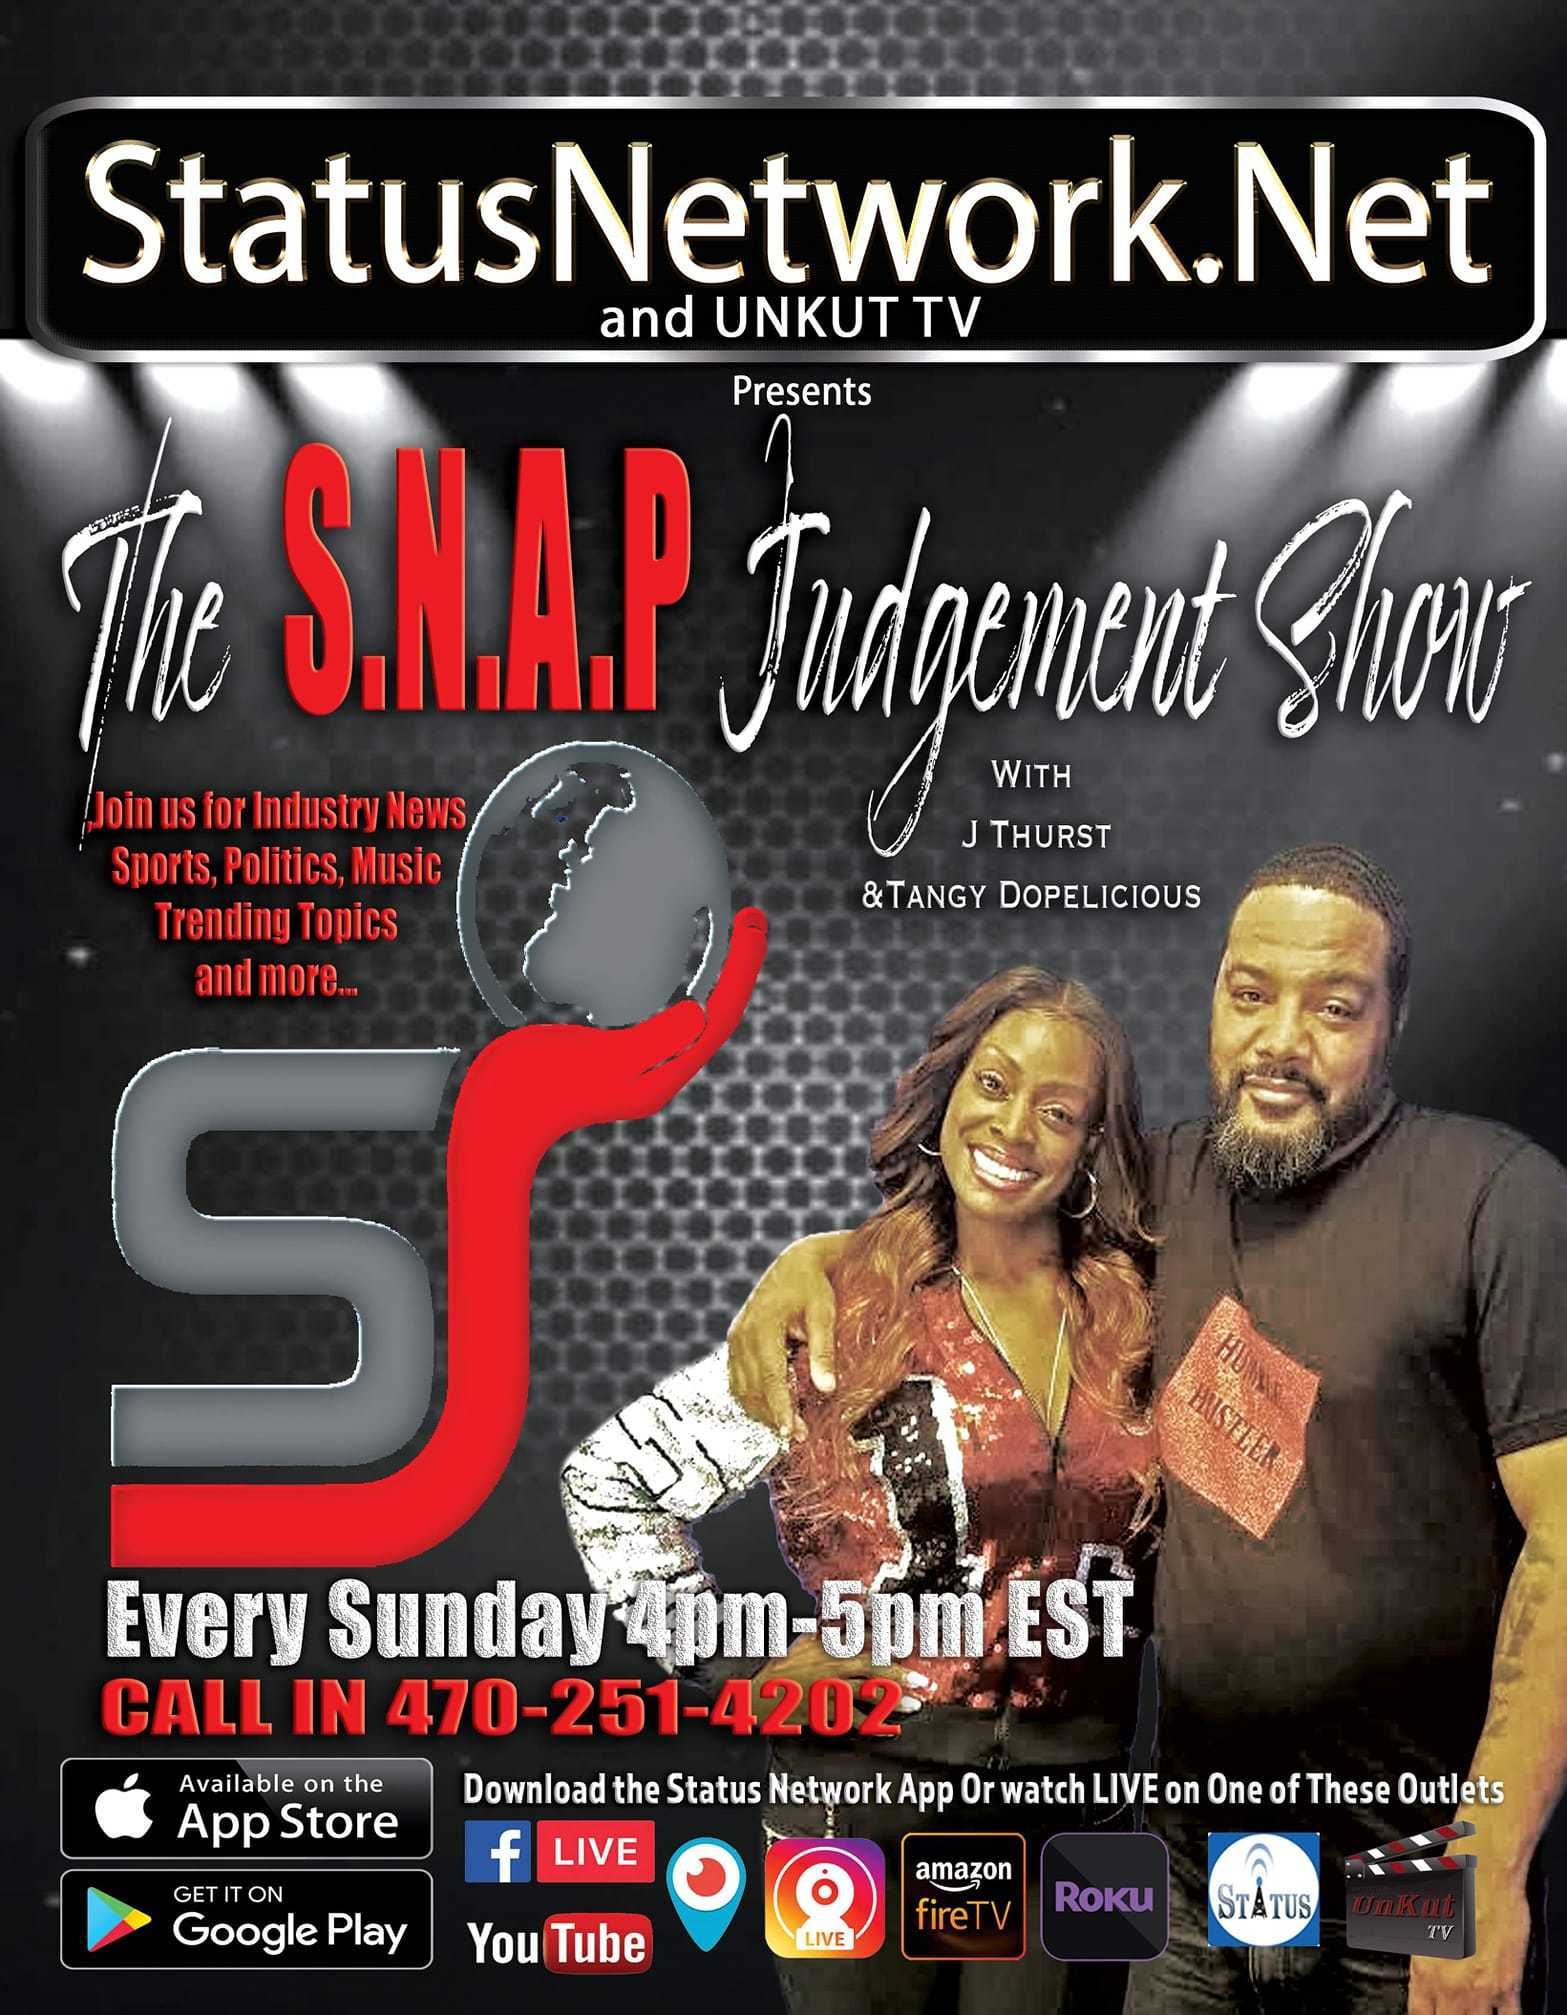 The S.N.A.P. Judgement Show flyer